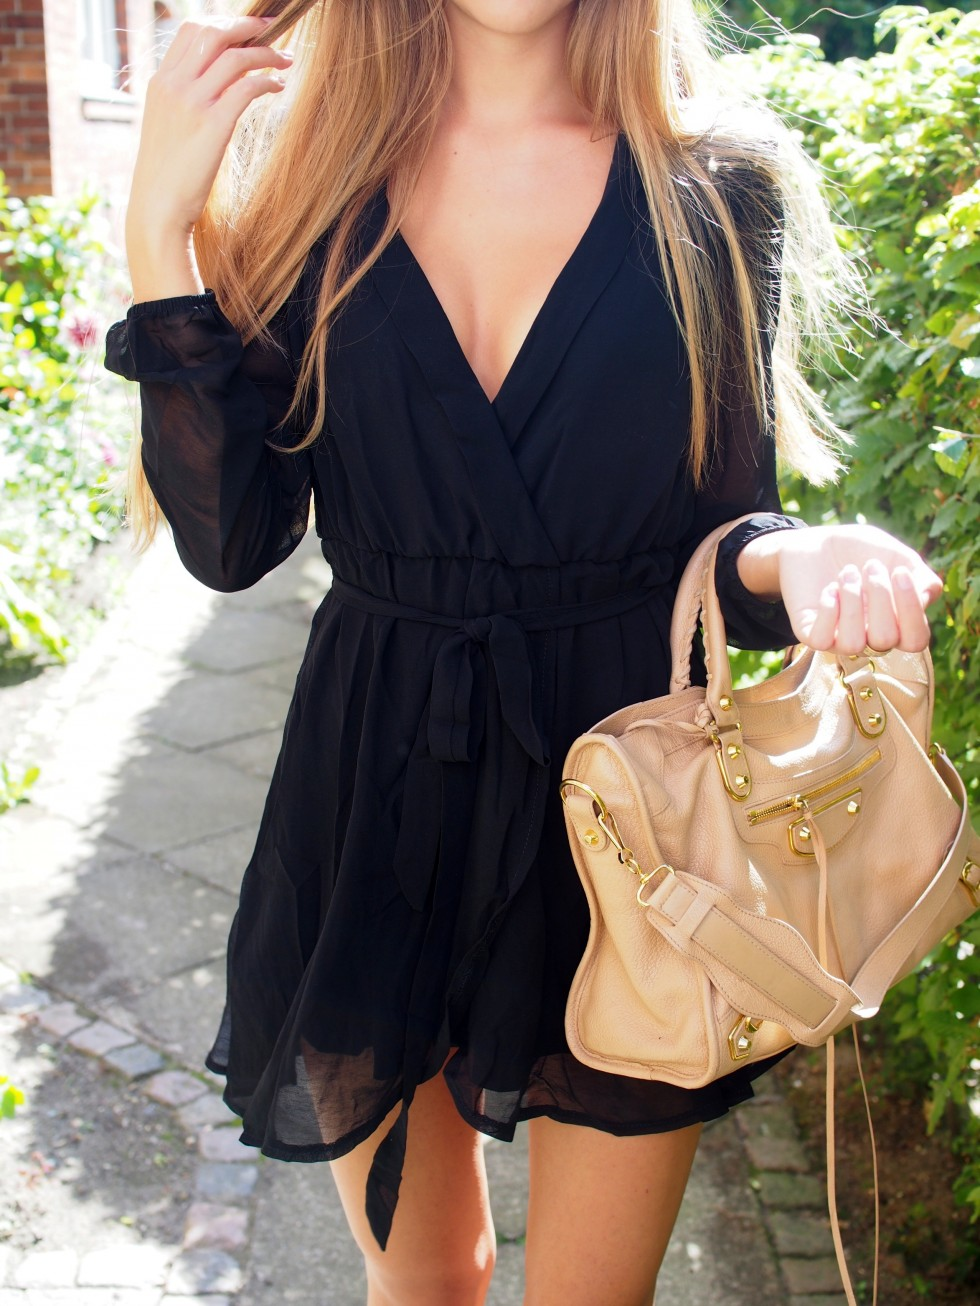 Sandra Willer is wearing a black wrap dress from NLY